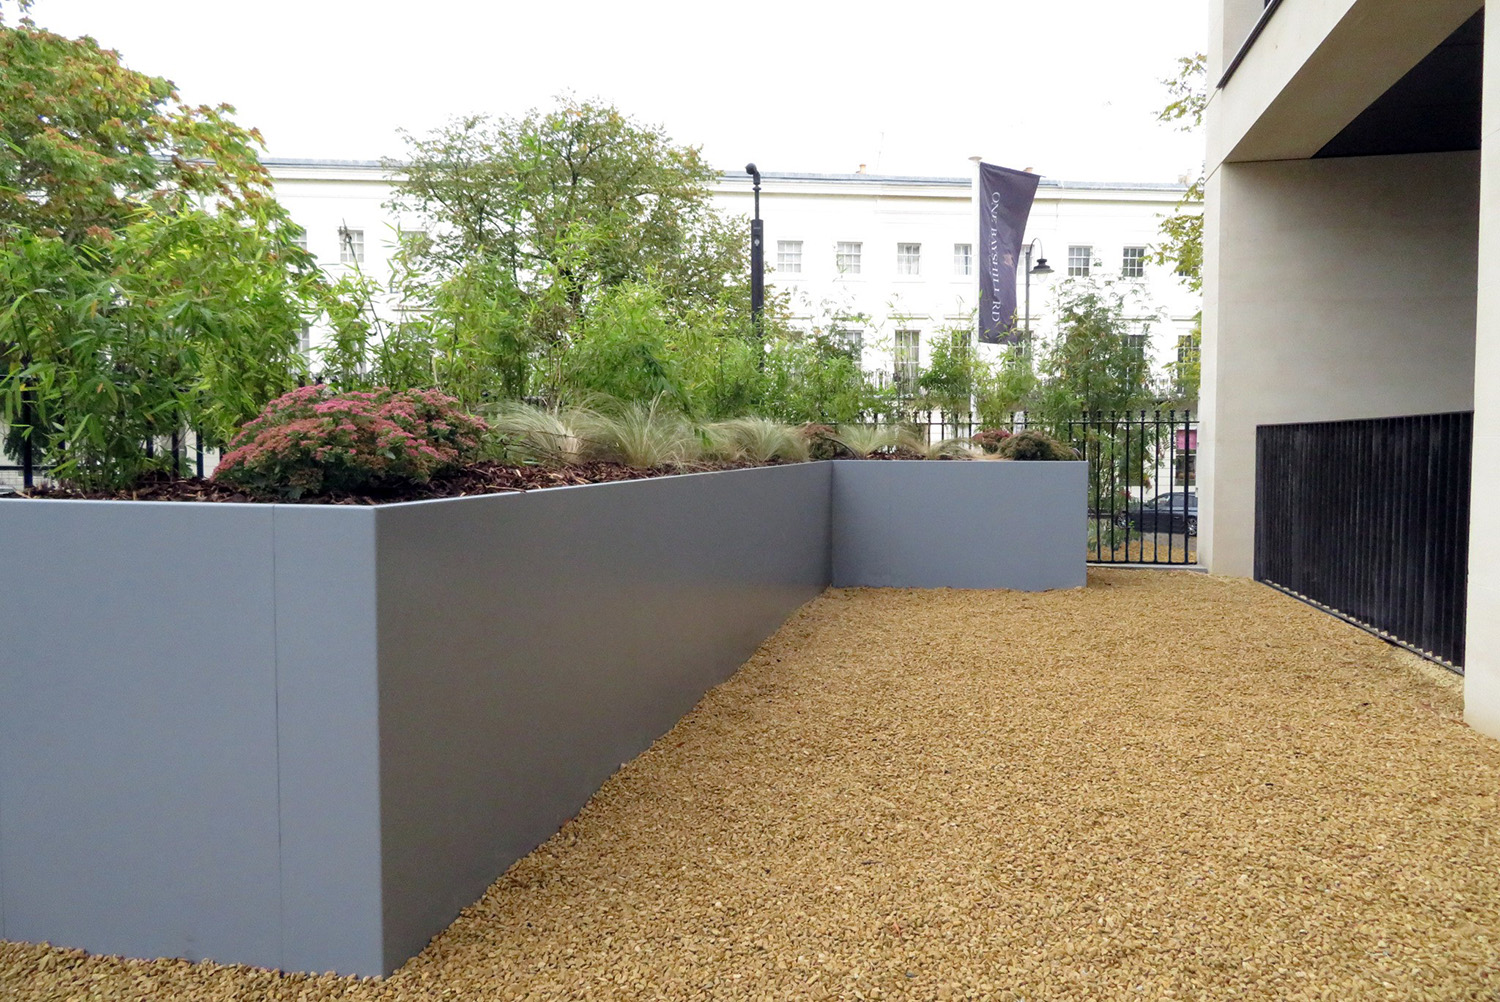 EverEdge custom edging and planters for various projects